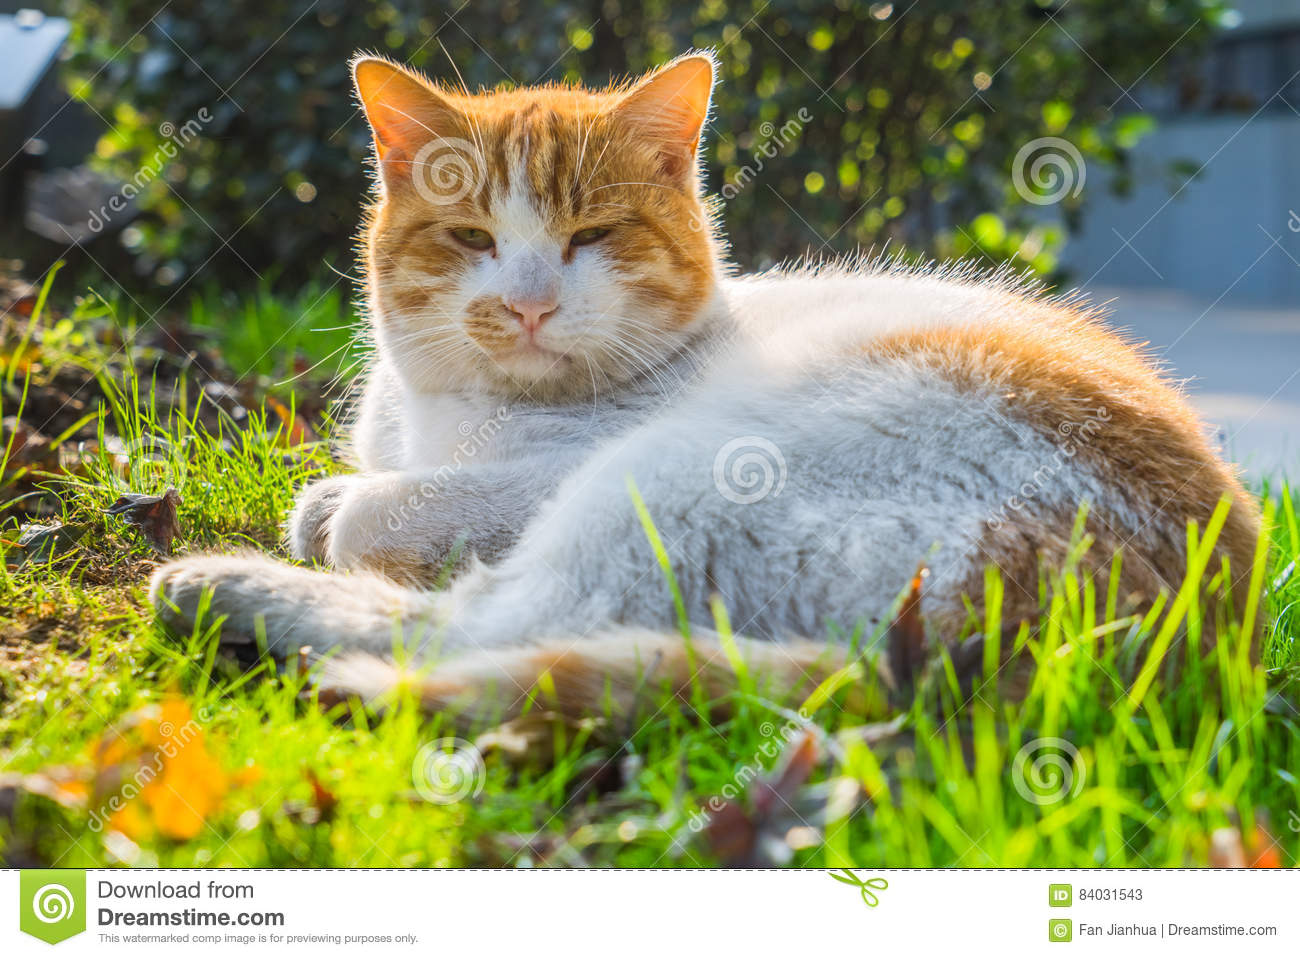 Cat Sitting On Footpath in un parco